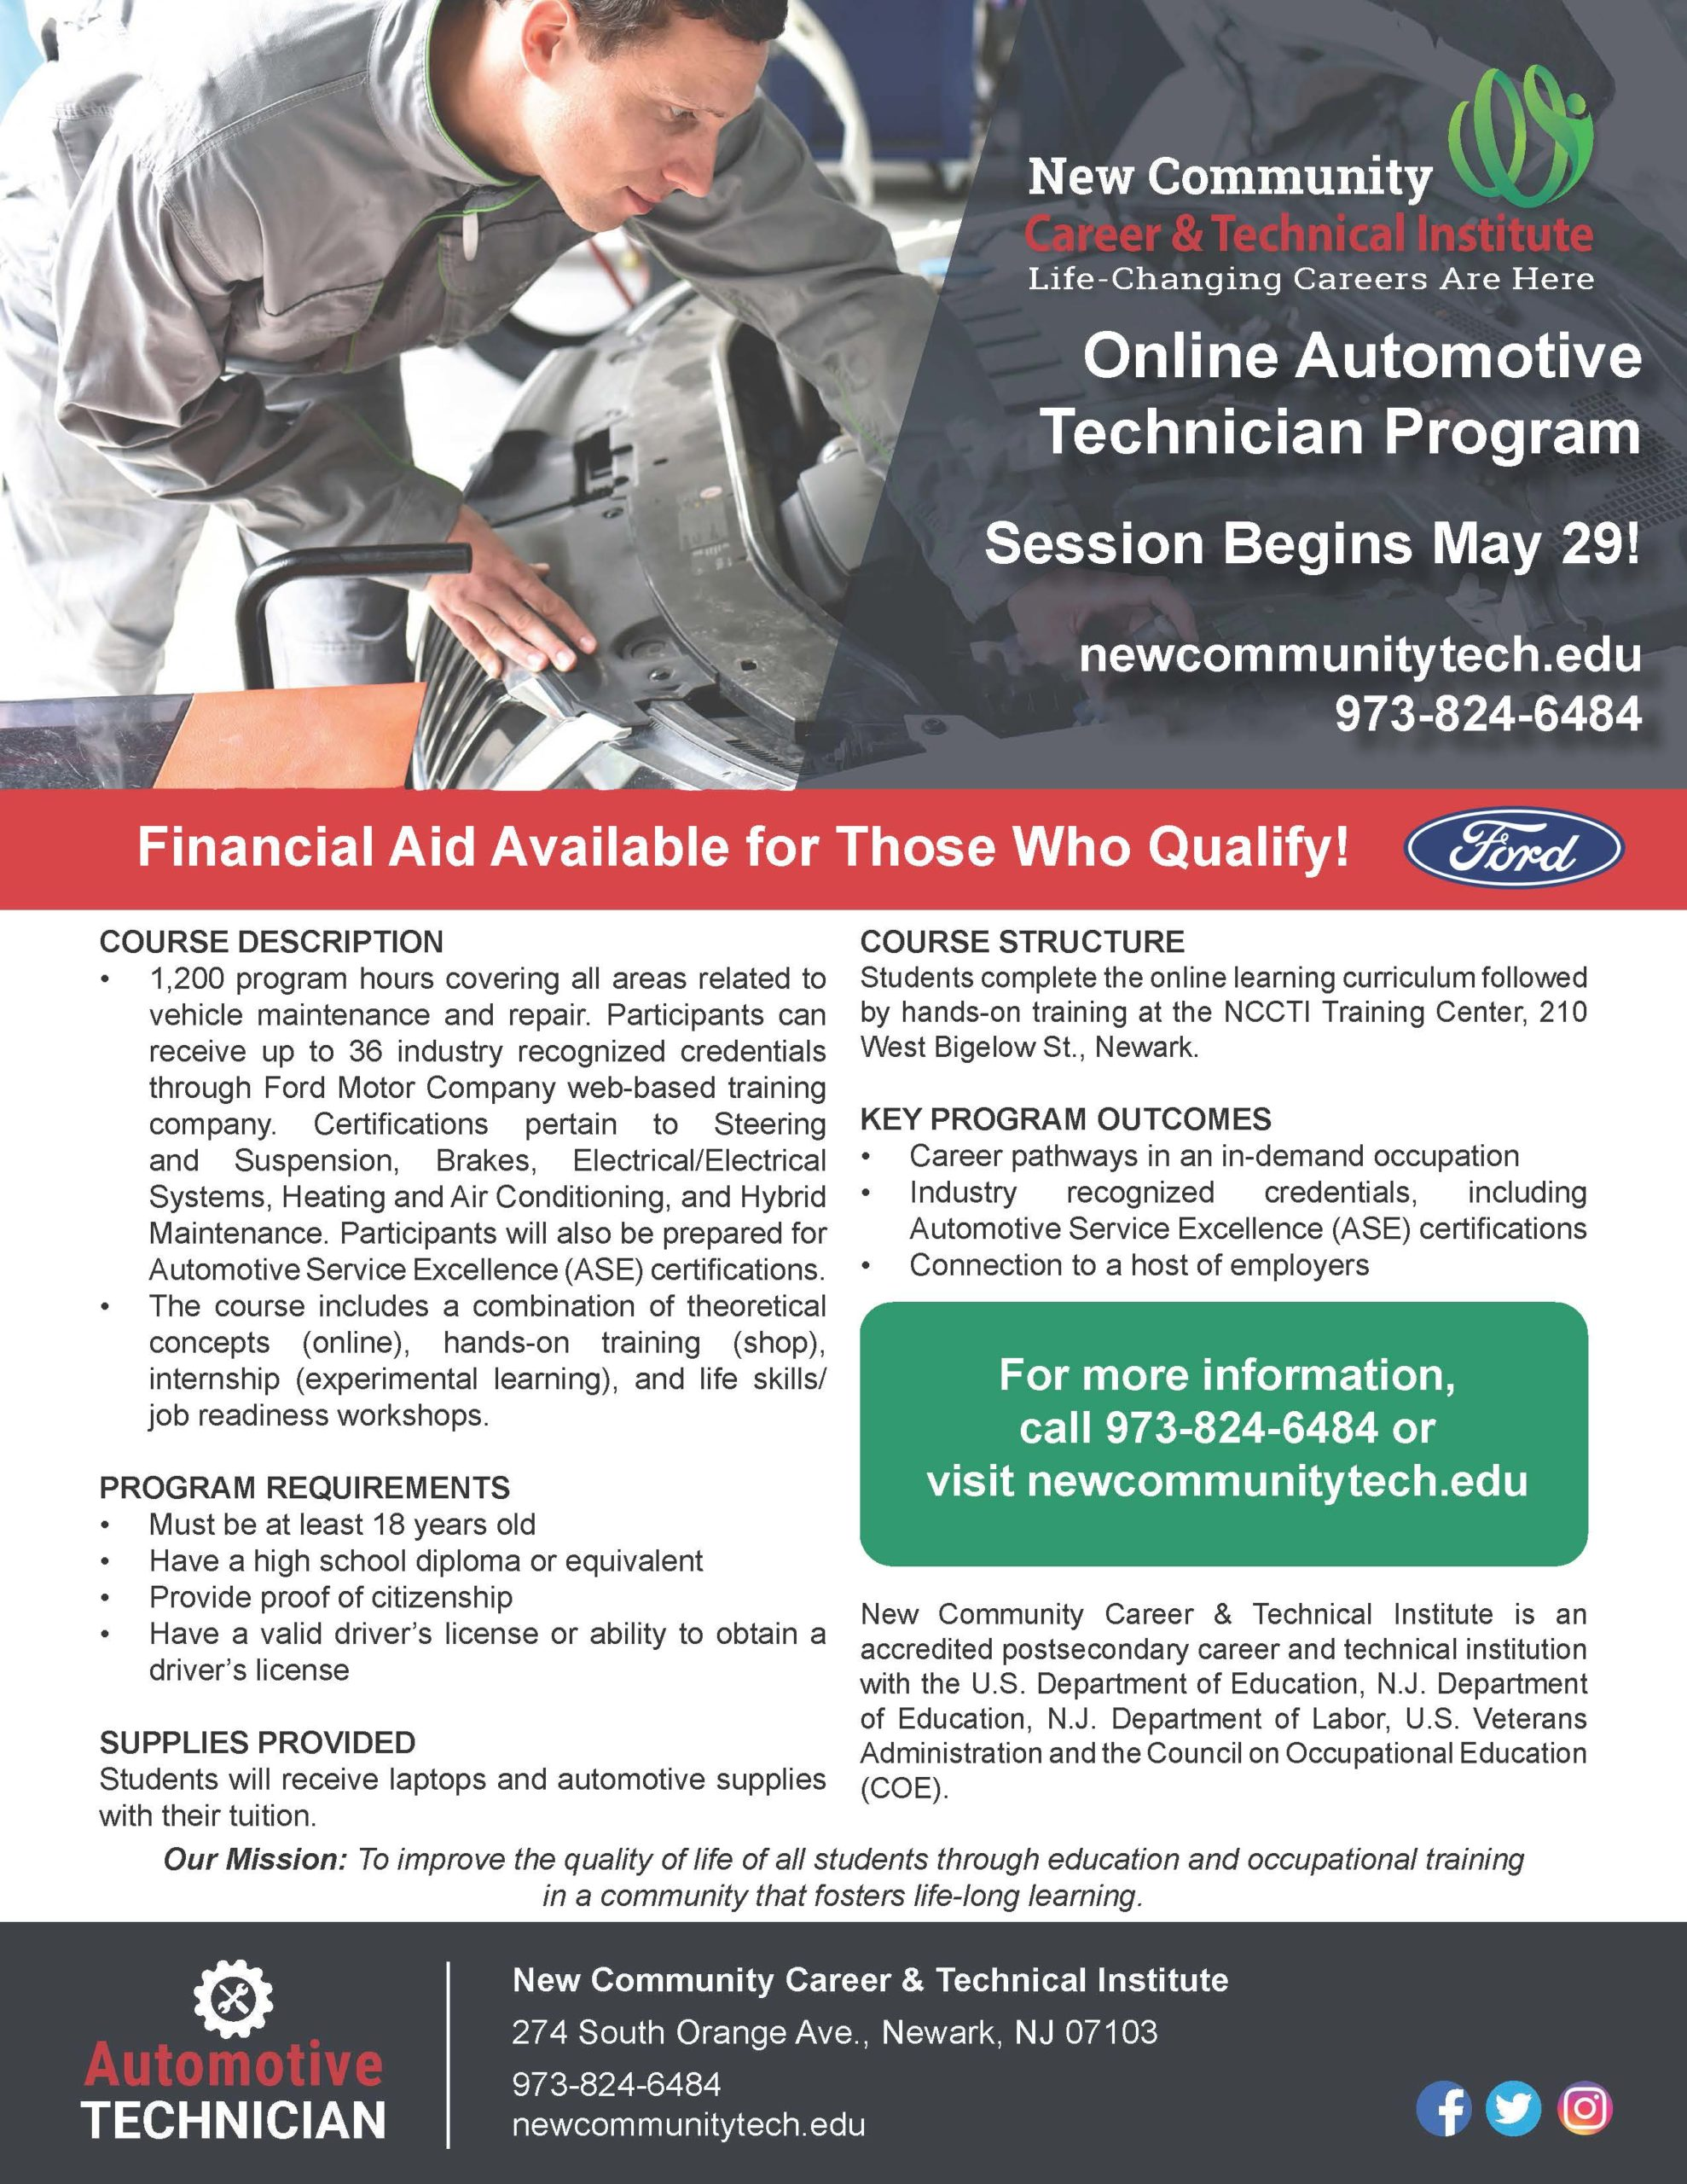 Online Automotive Program Flyer 4-30-2020